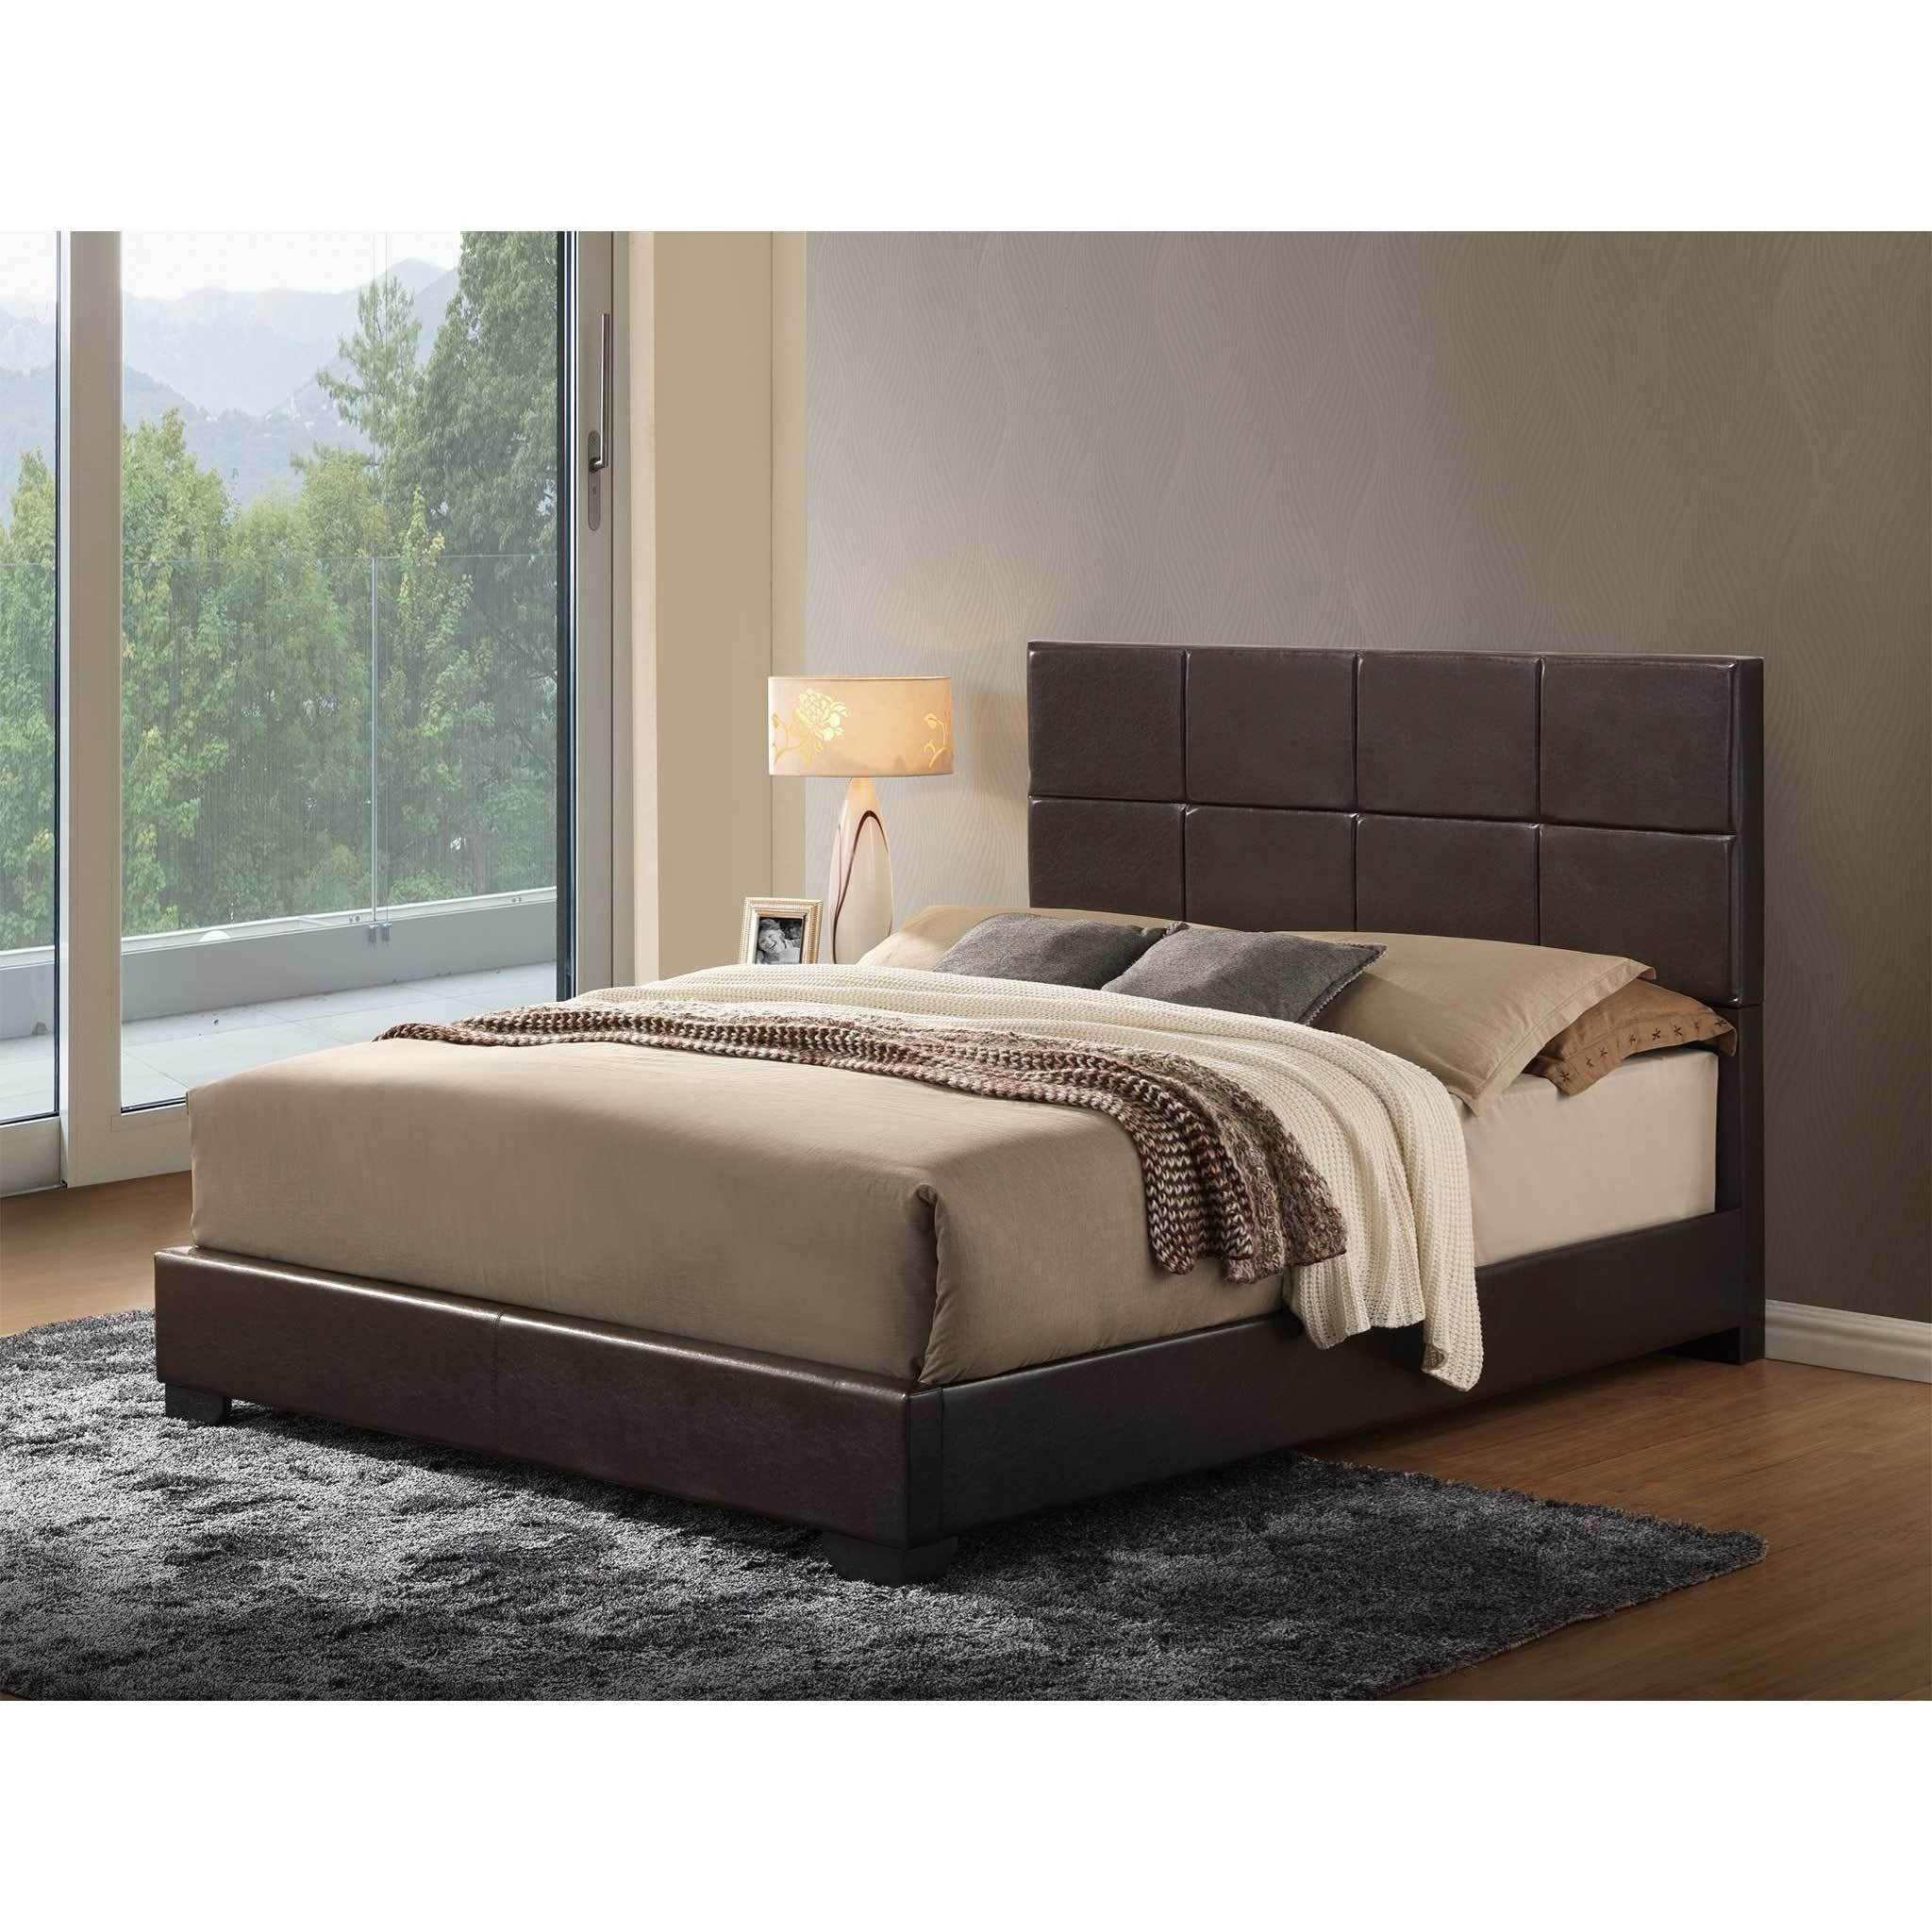 8566 Upholstered King Bed by Global Furniture at Nassau Furniture and Mattress